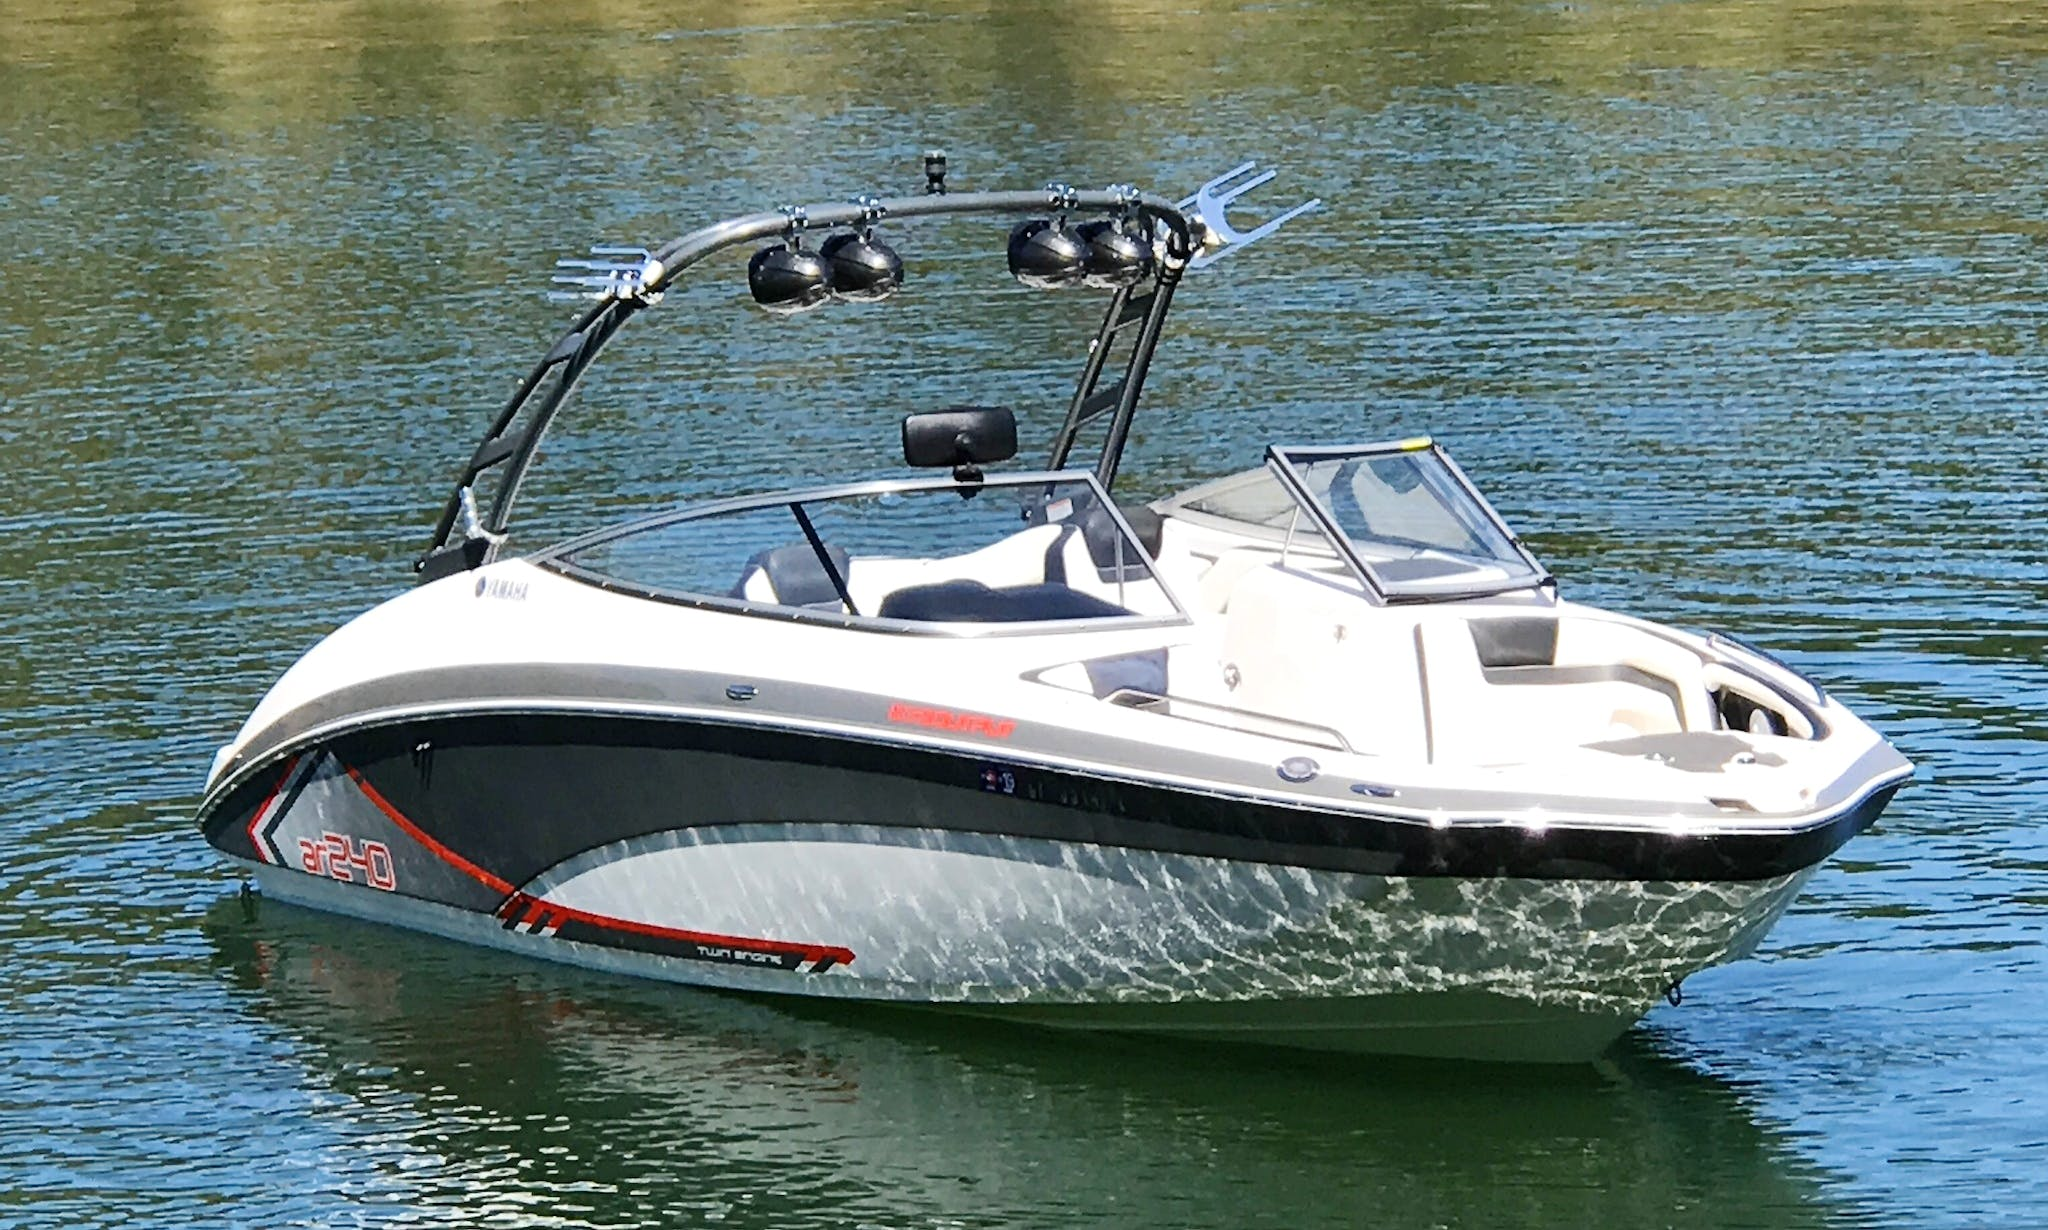 24' Yamaha Ski Boat Rental In Lake Tahoe